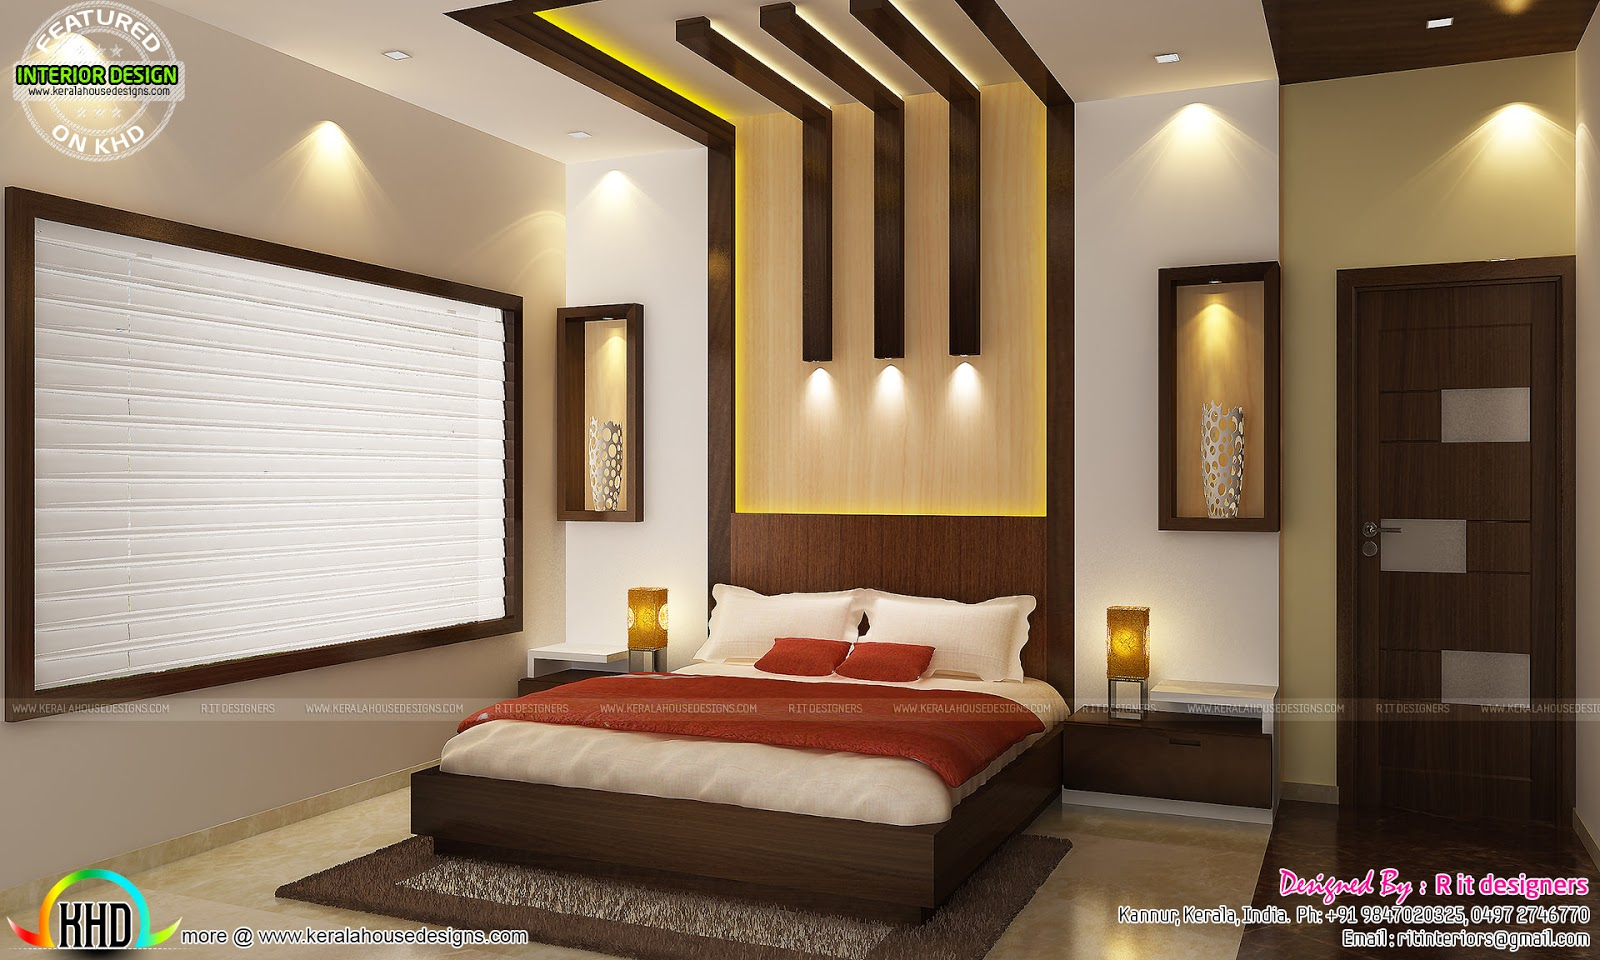 Kitchen living bedroom dining interior decor kerala home design and floor plans - Interior designing bedroom ...